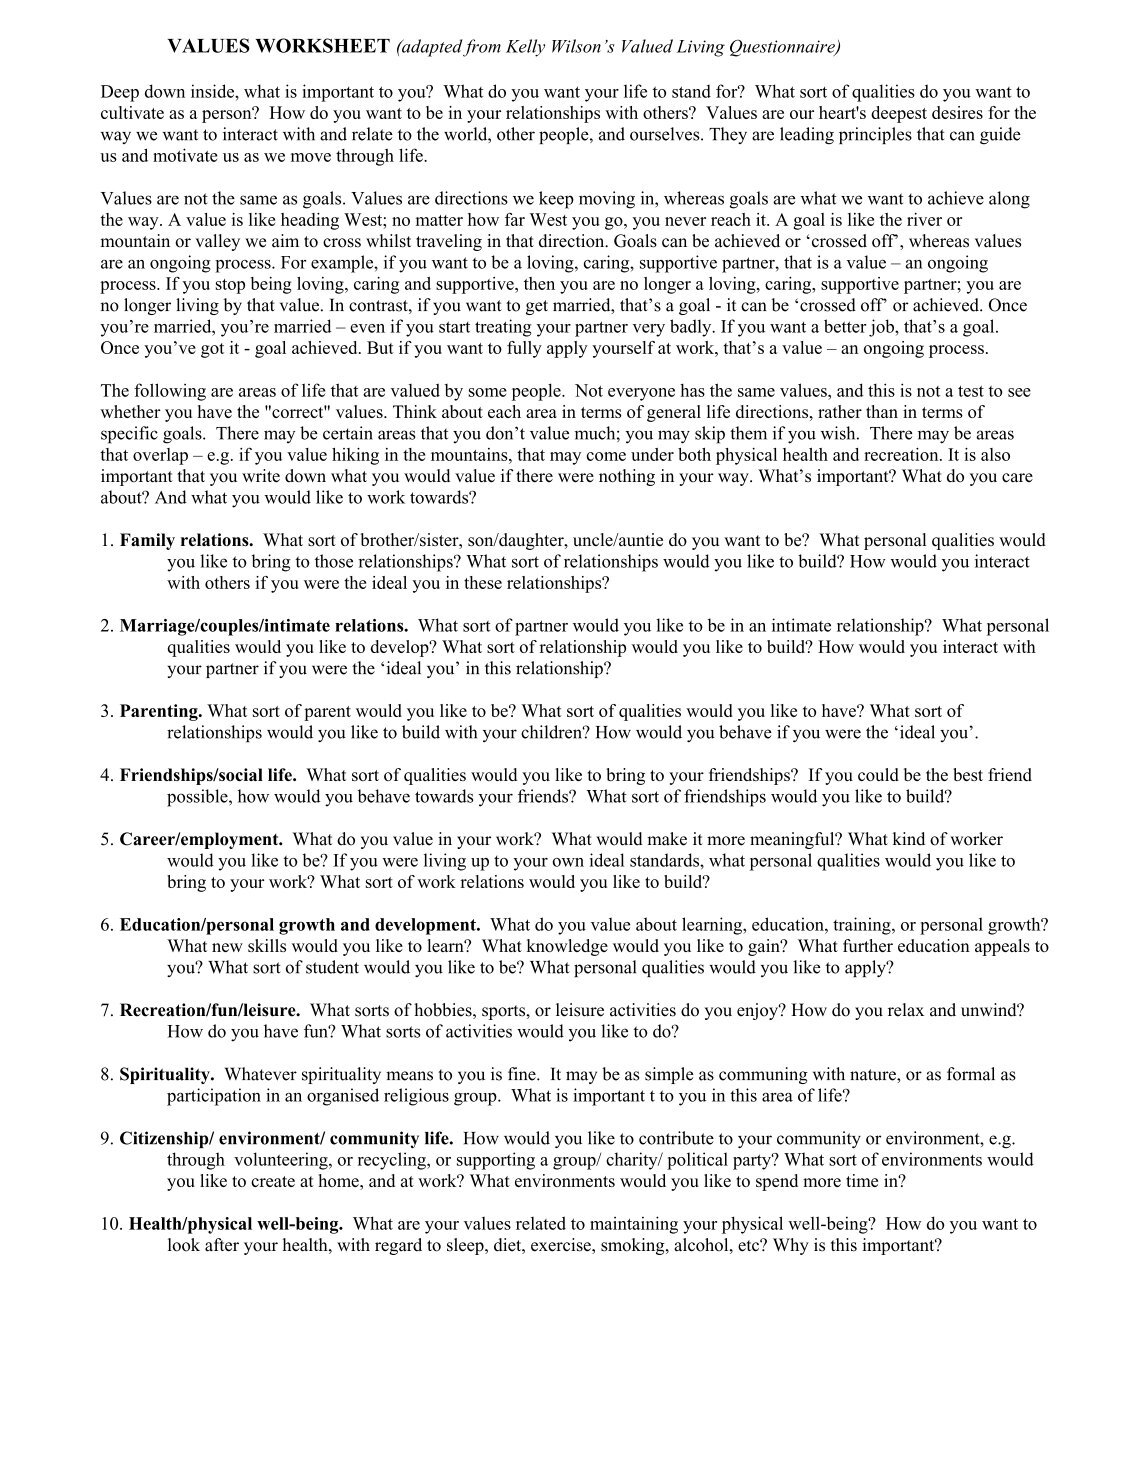 Commonly Confused Words Worksheet Pdf